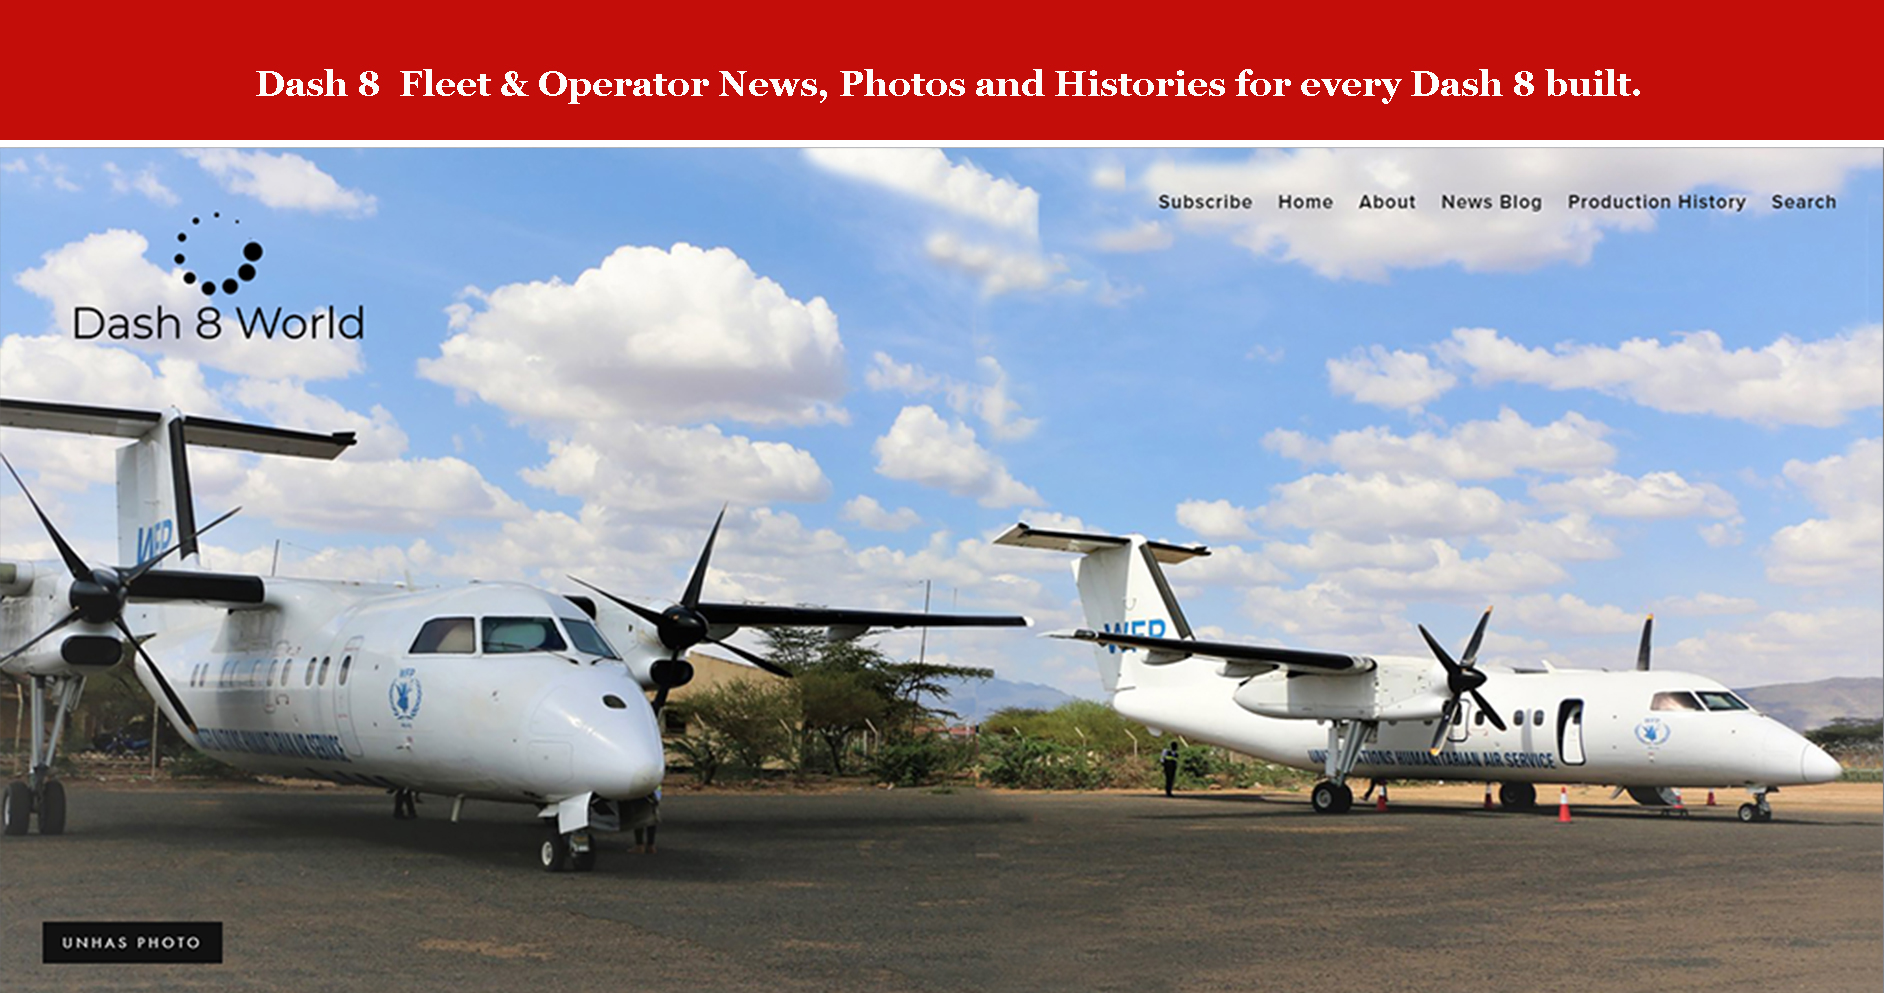 DASH8WORLD_COVER_SCREENSHOT_13AUG2019.jpg